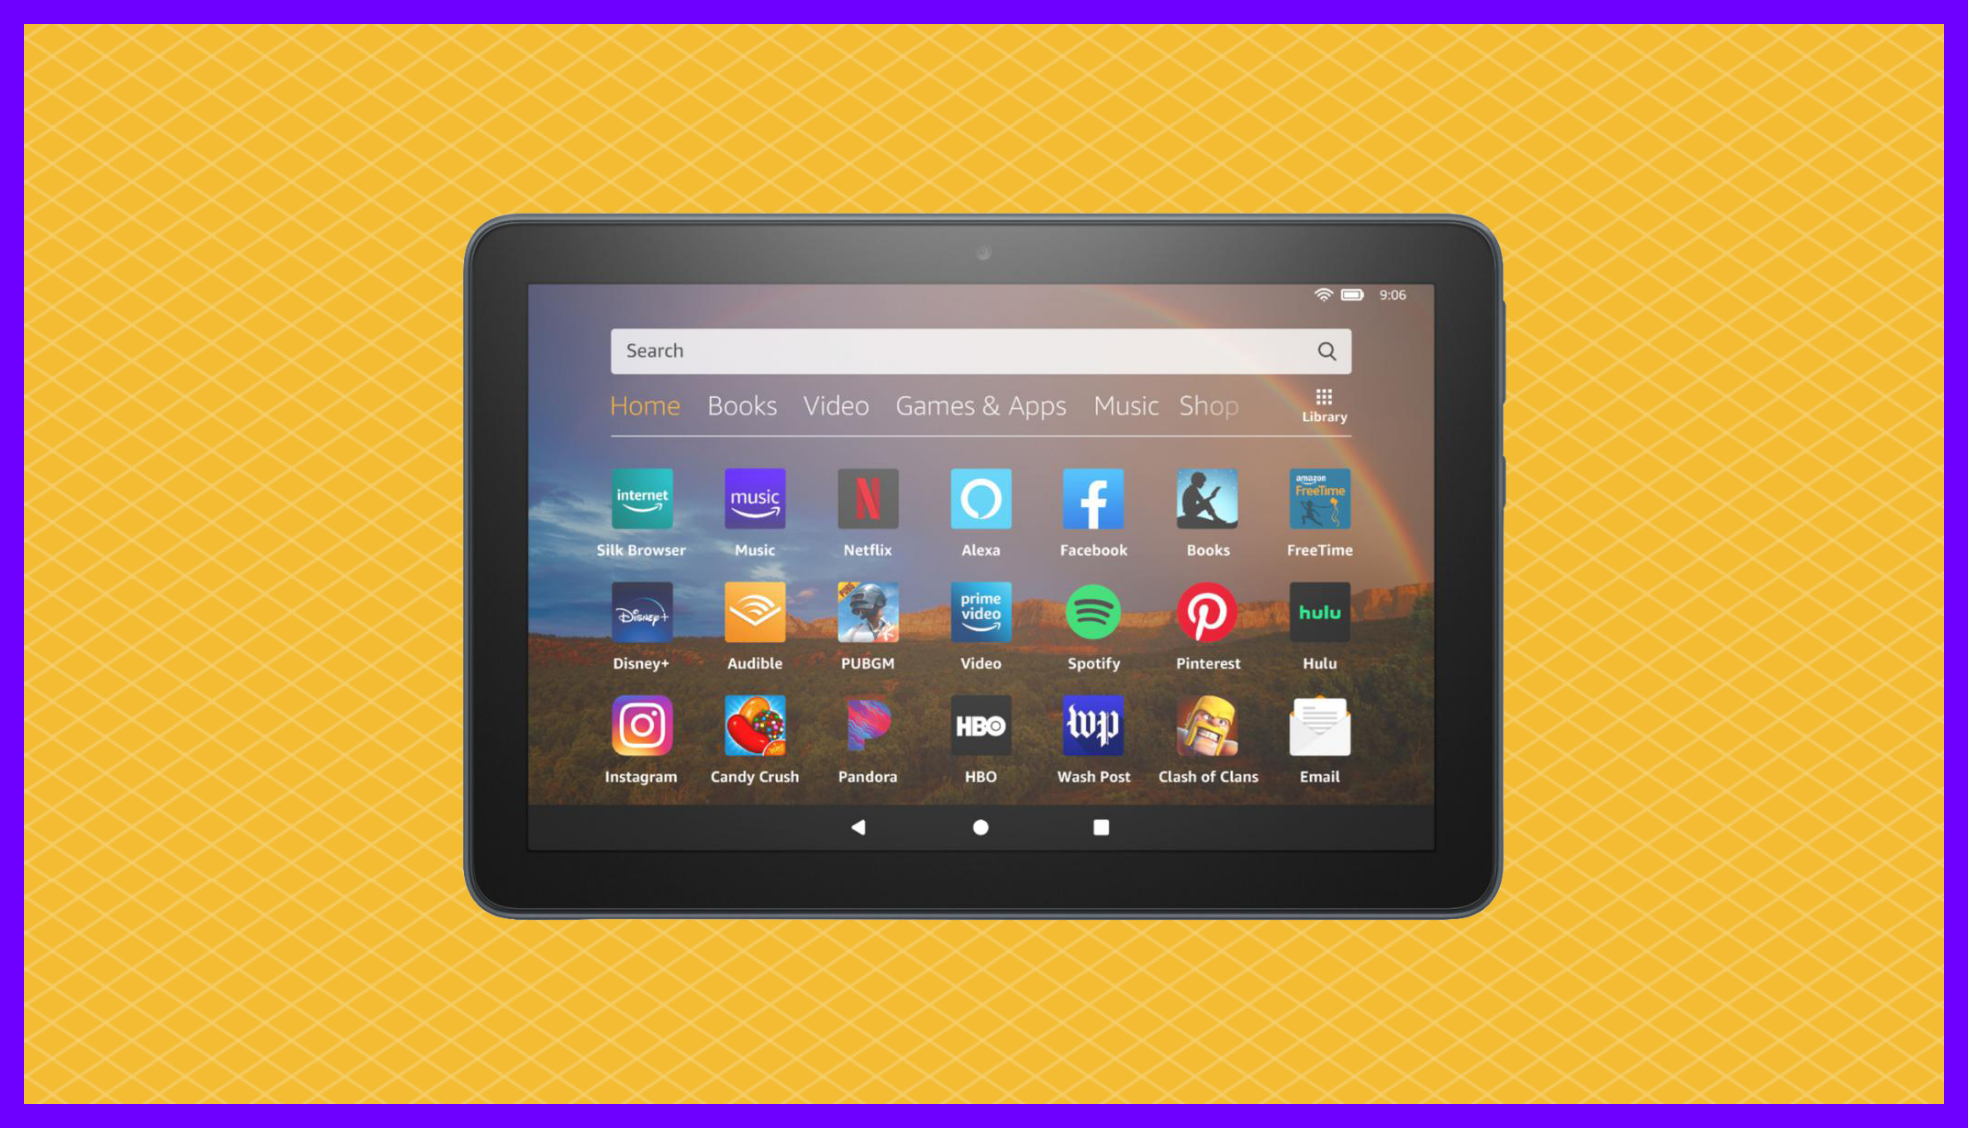 Quick! HSN has the Amazon Fire HD 8 Plus for the lowest price on the internet right now—grab it for